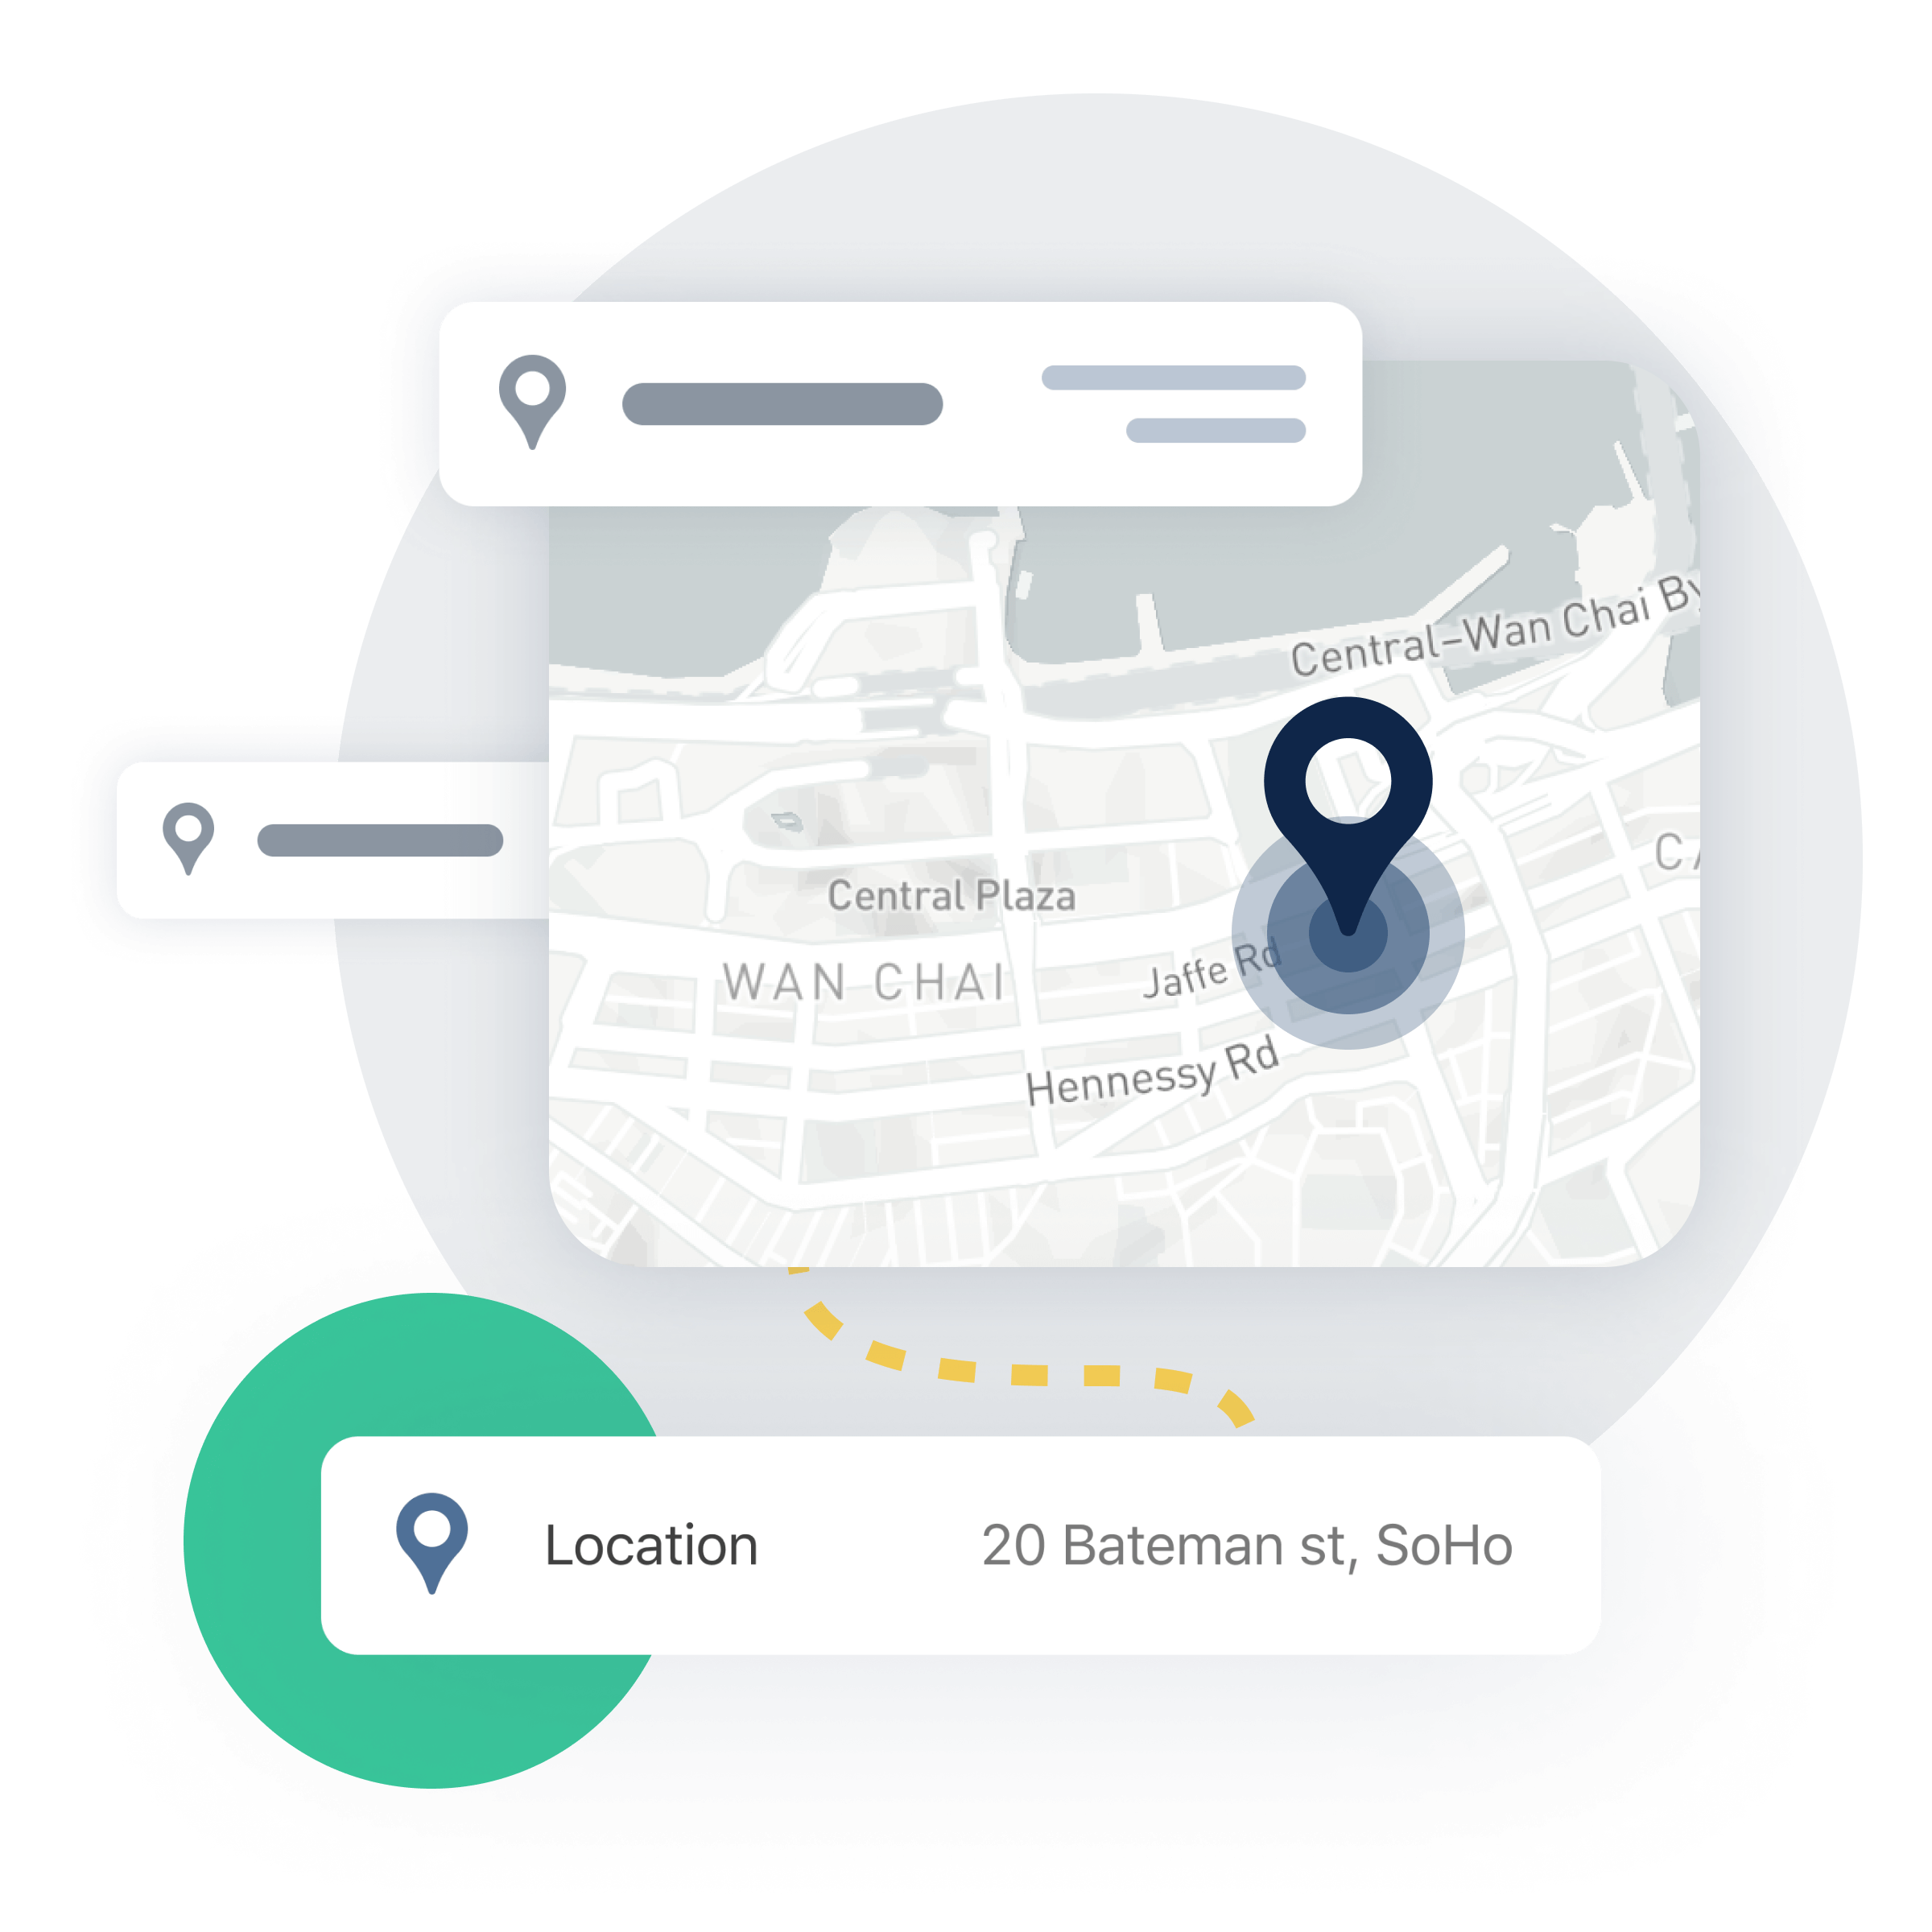 gini enriches transactions with additional metadata including location and address of merchant